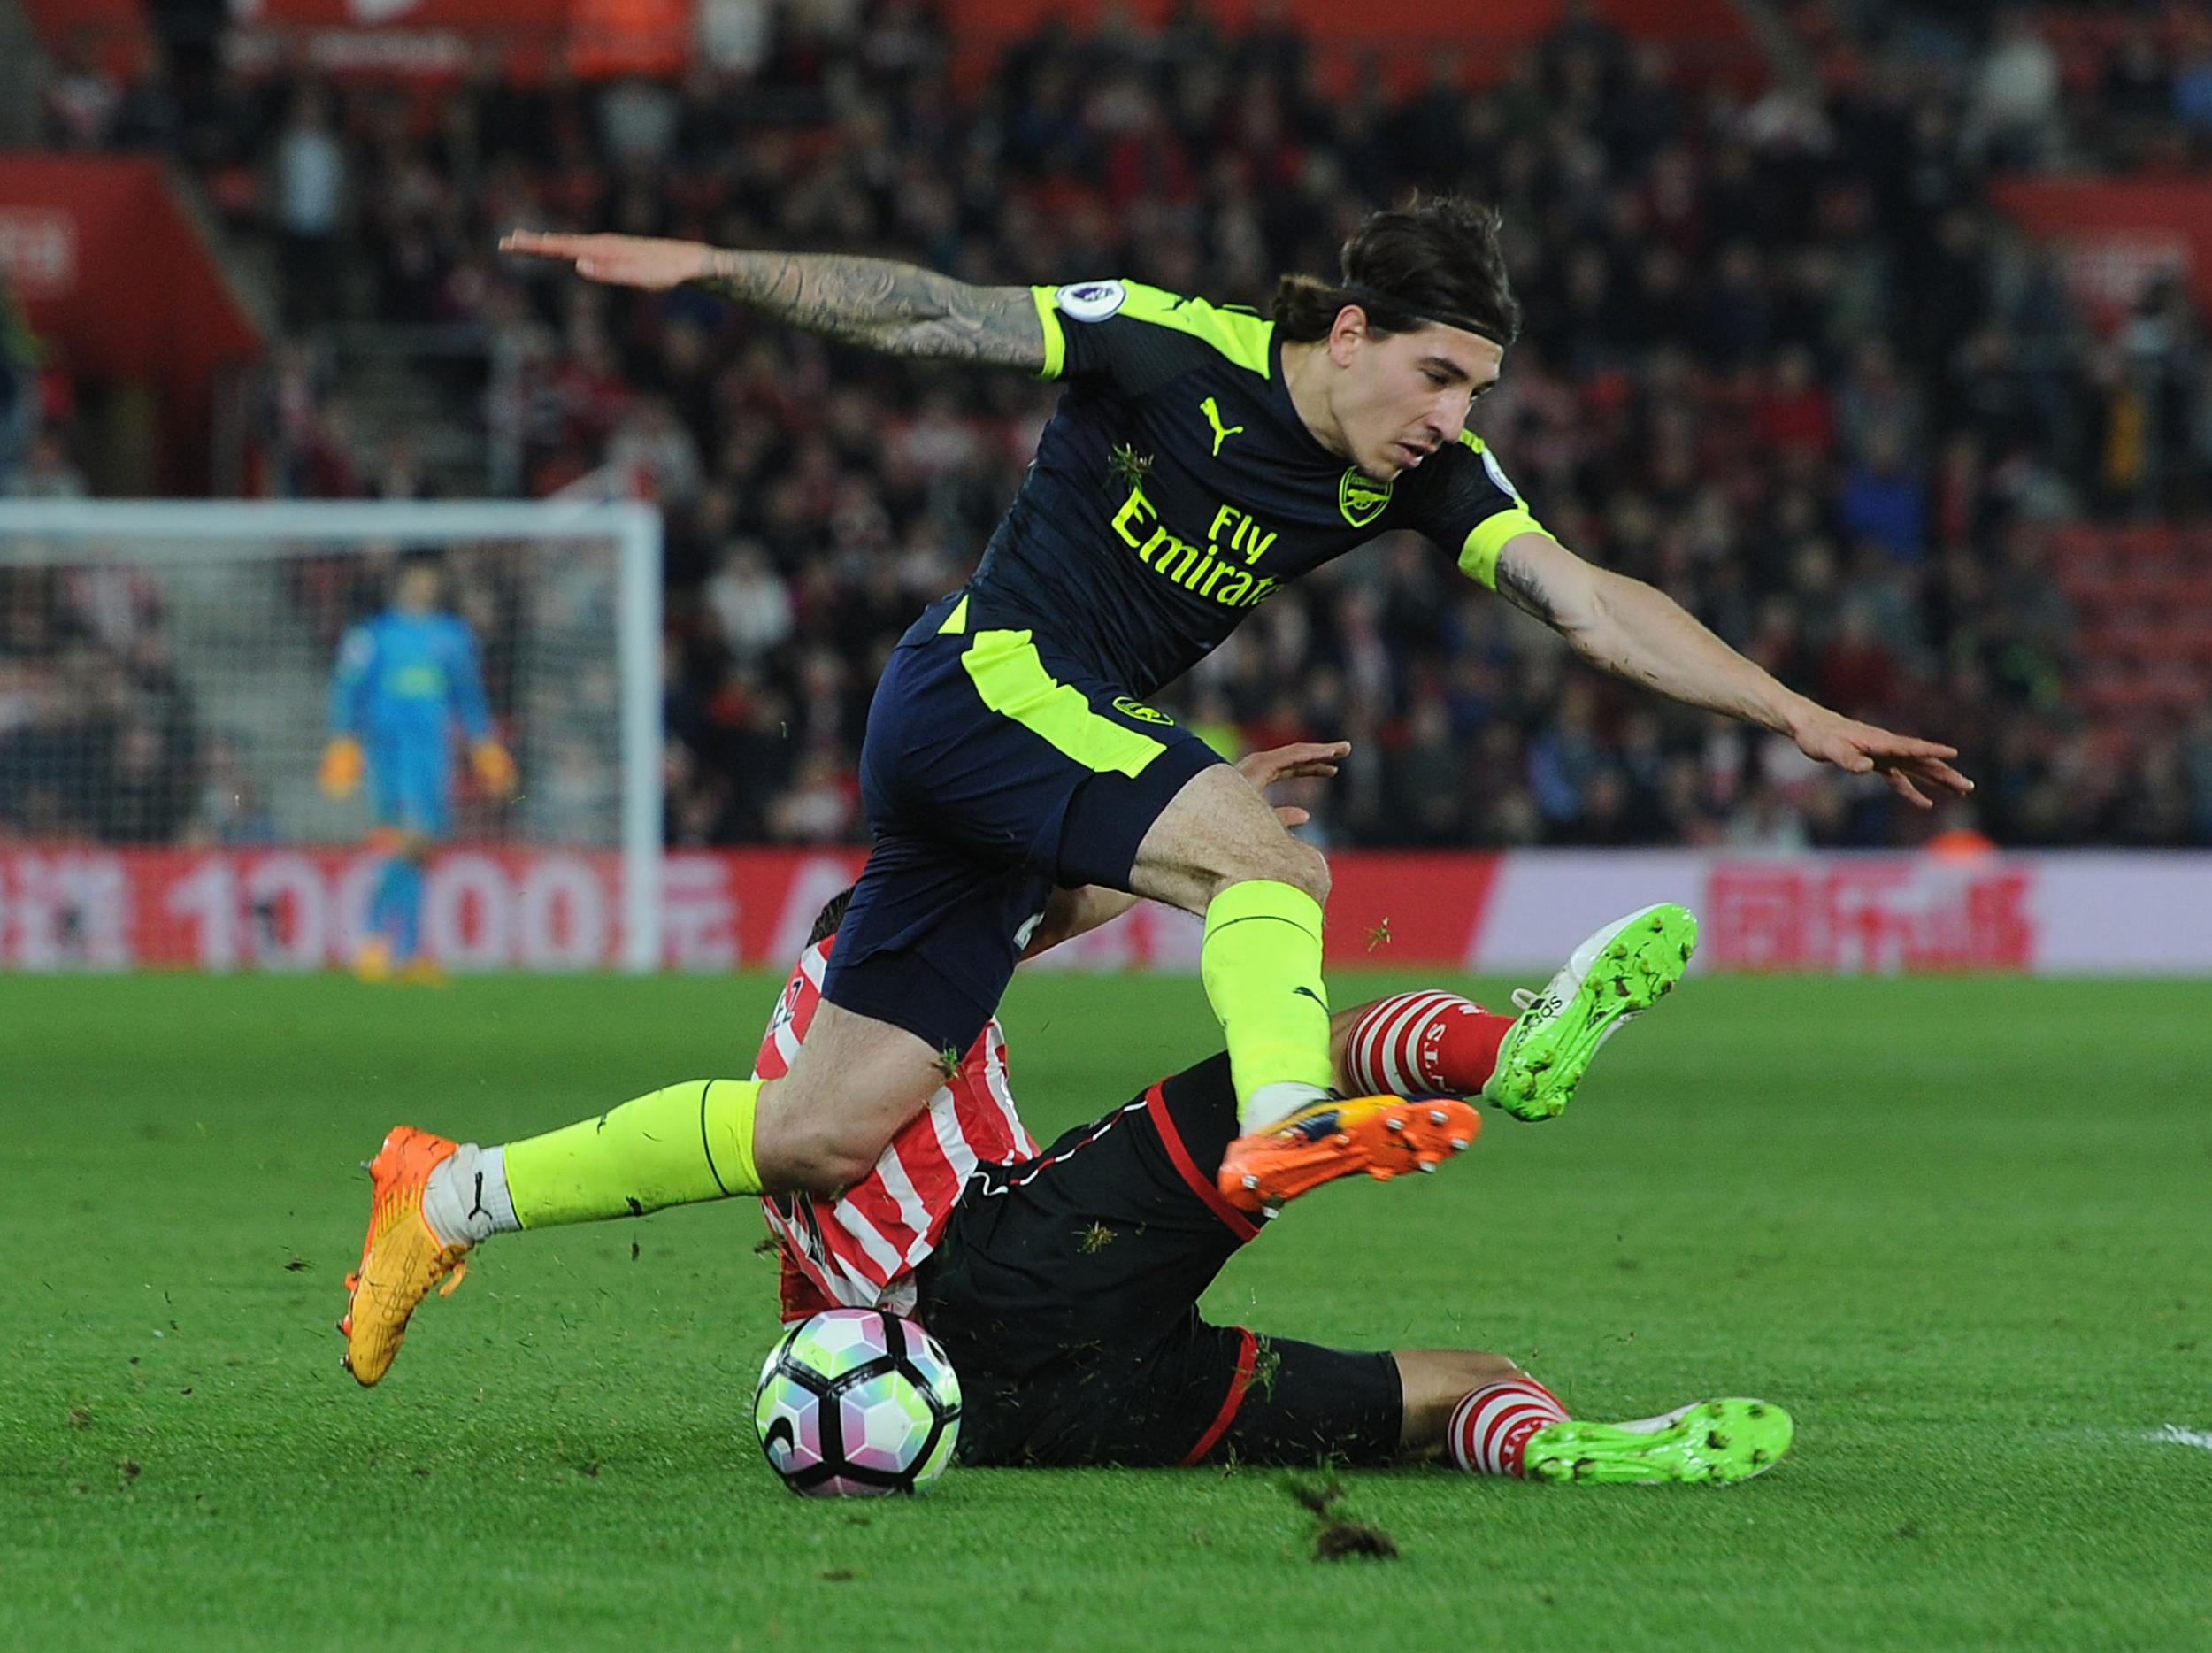 Arsenal manager Arsene Wenger insists Hector Bellerin is ready to cover for Alex Oxlade-Chamberlain